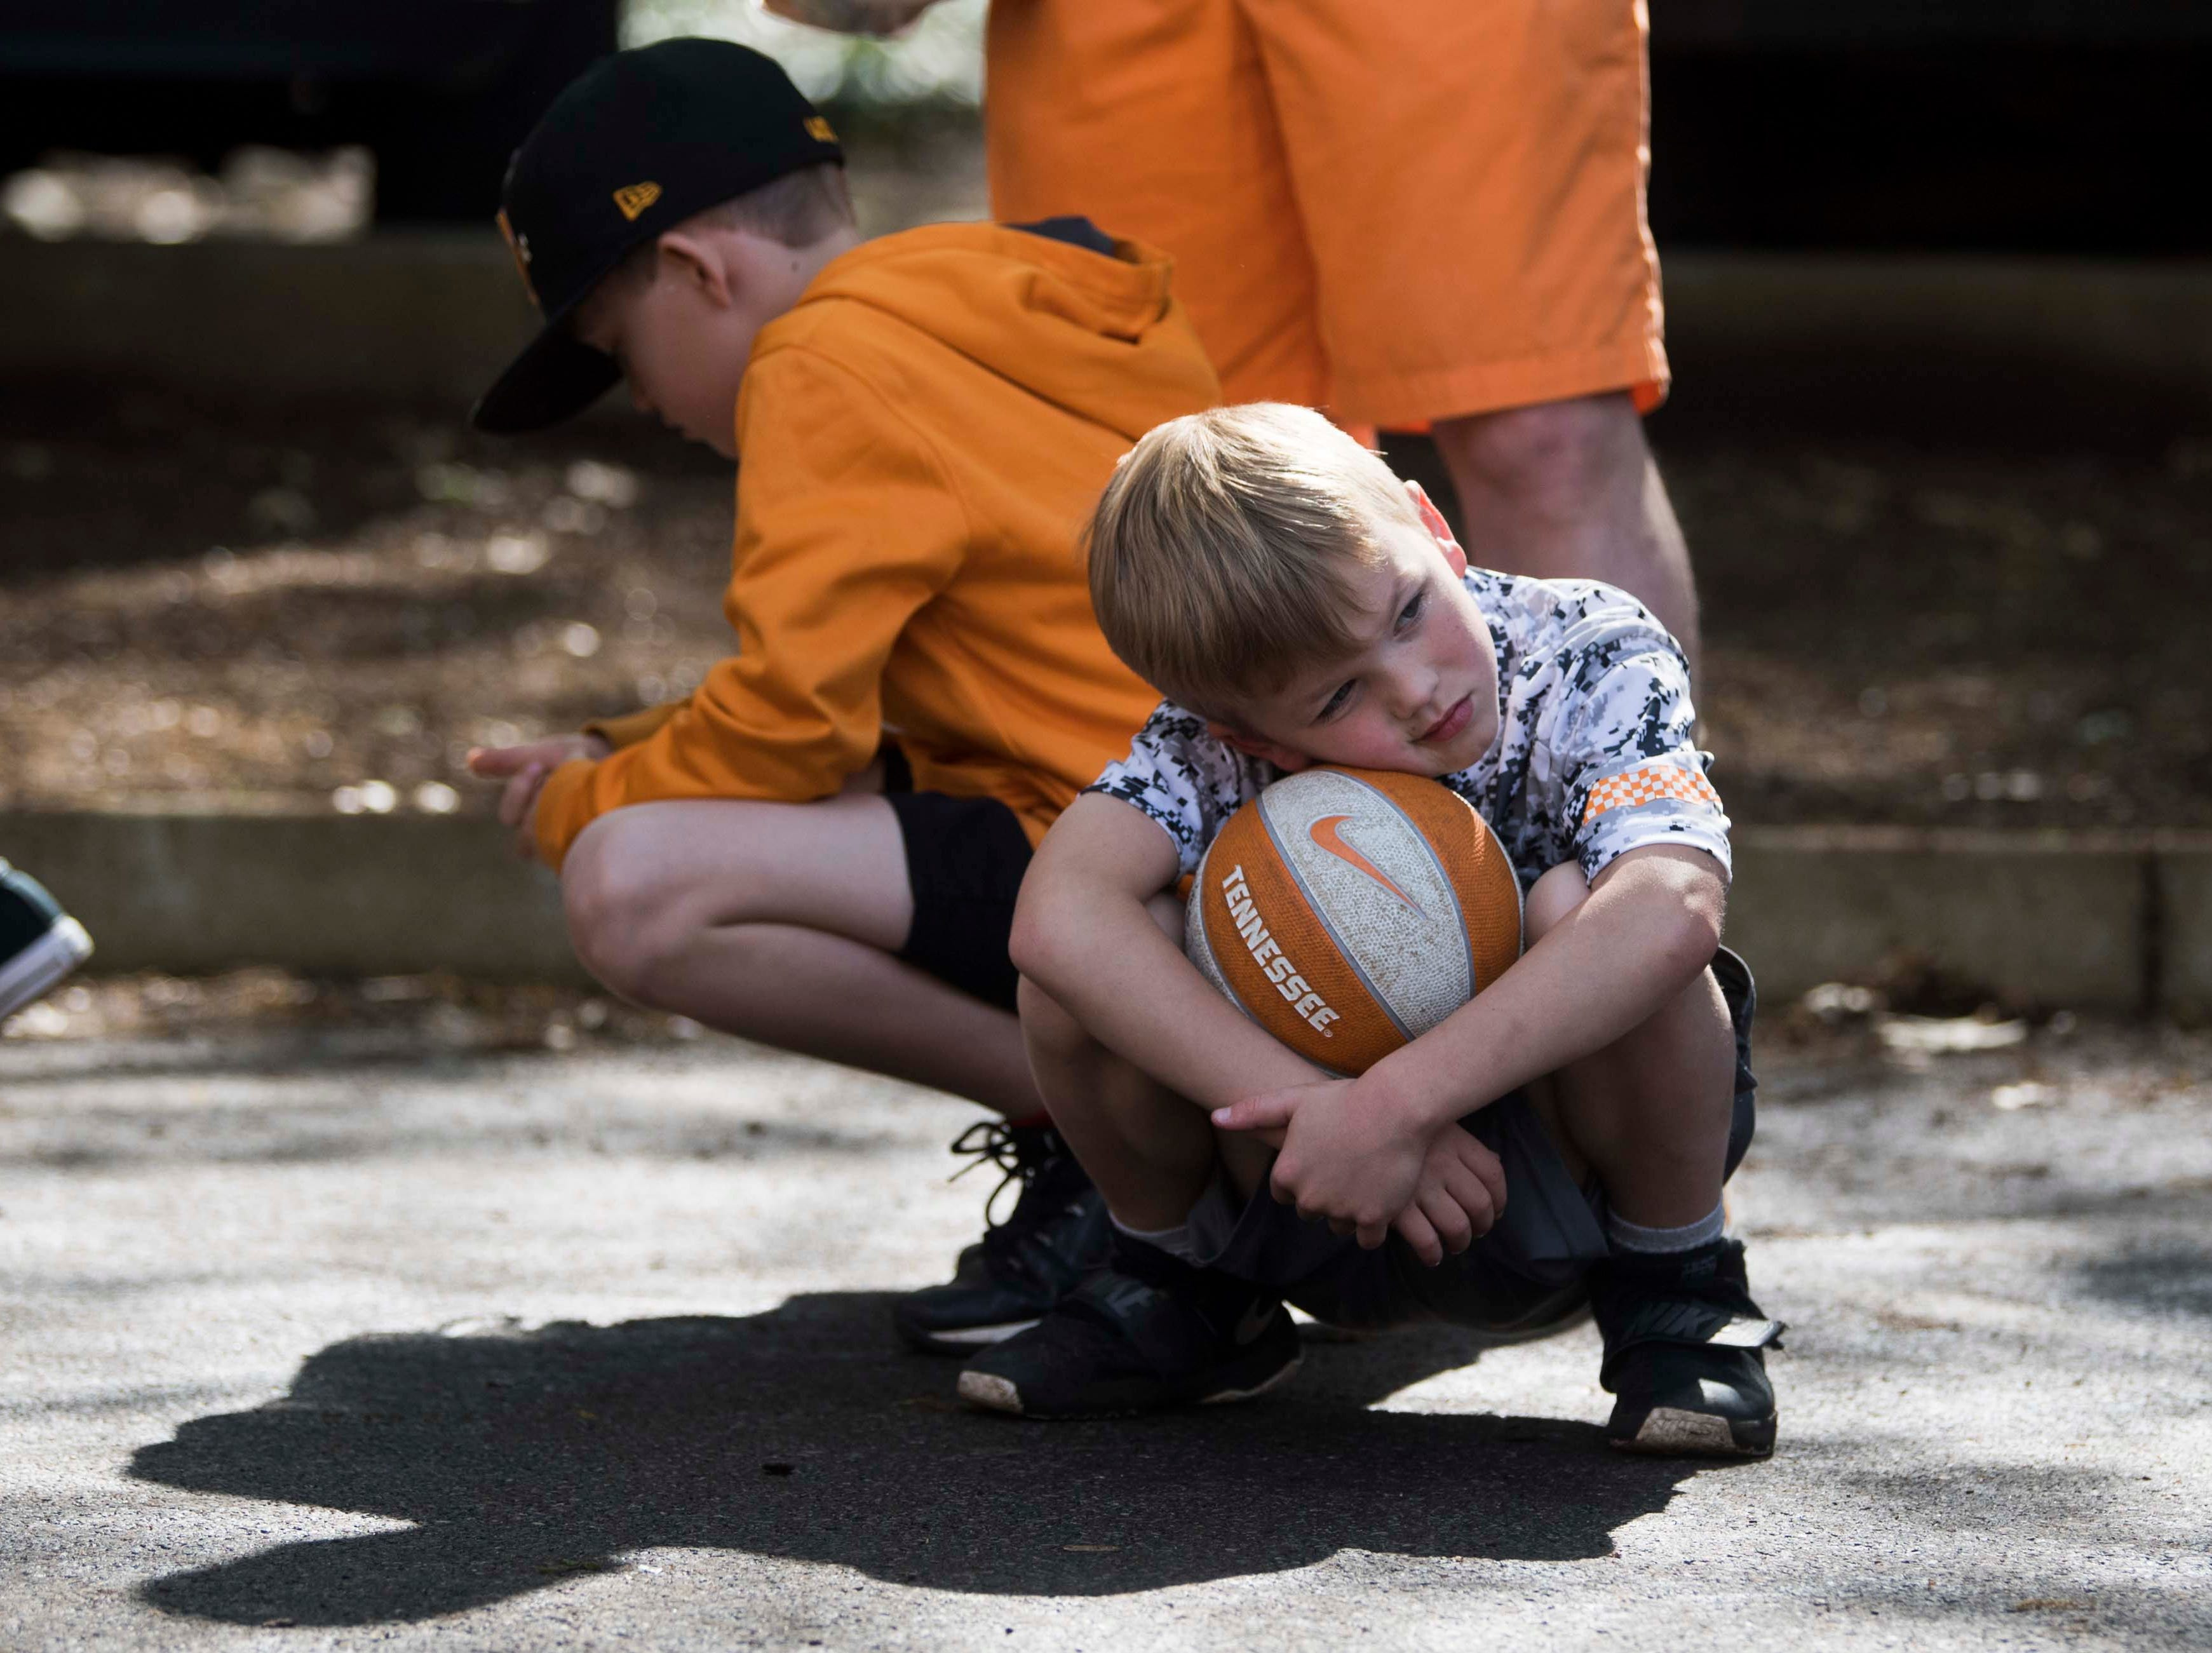 Ryan Morrison, 7, of Knoxville waits in the shade for the Vols spring game to begin outside Neyland Stadium in Knoxville Saturday, April 13, 2019.